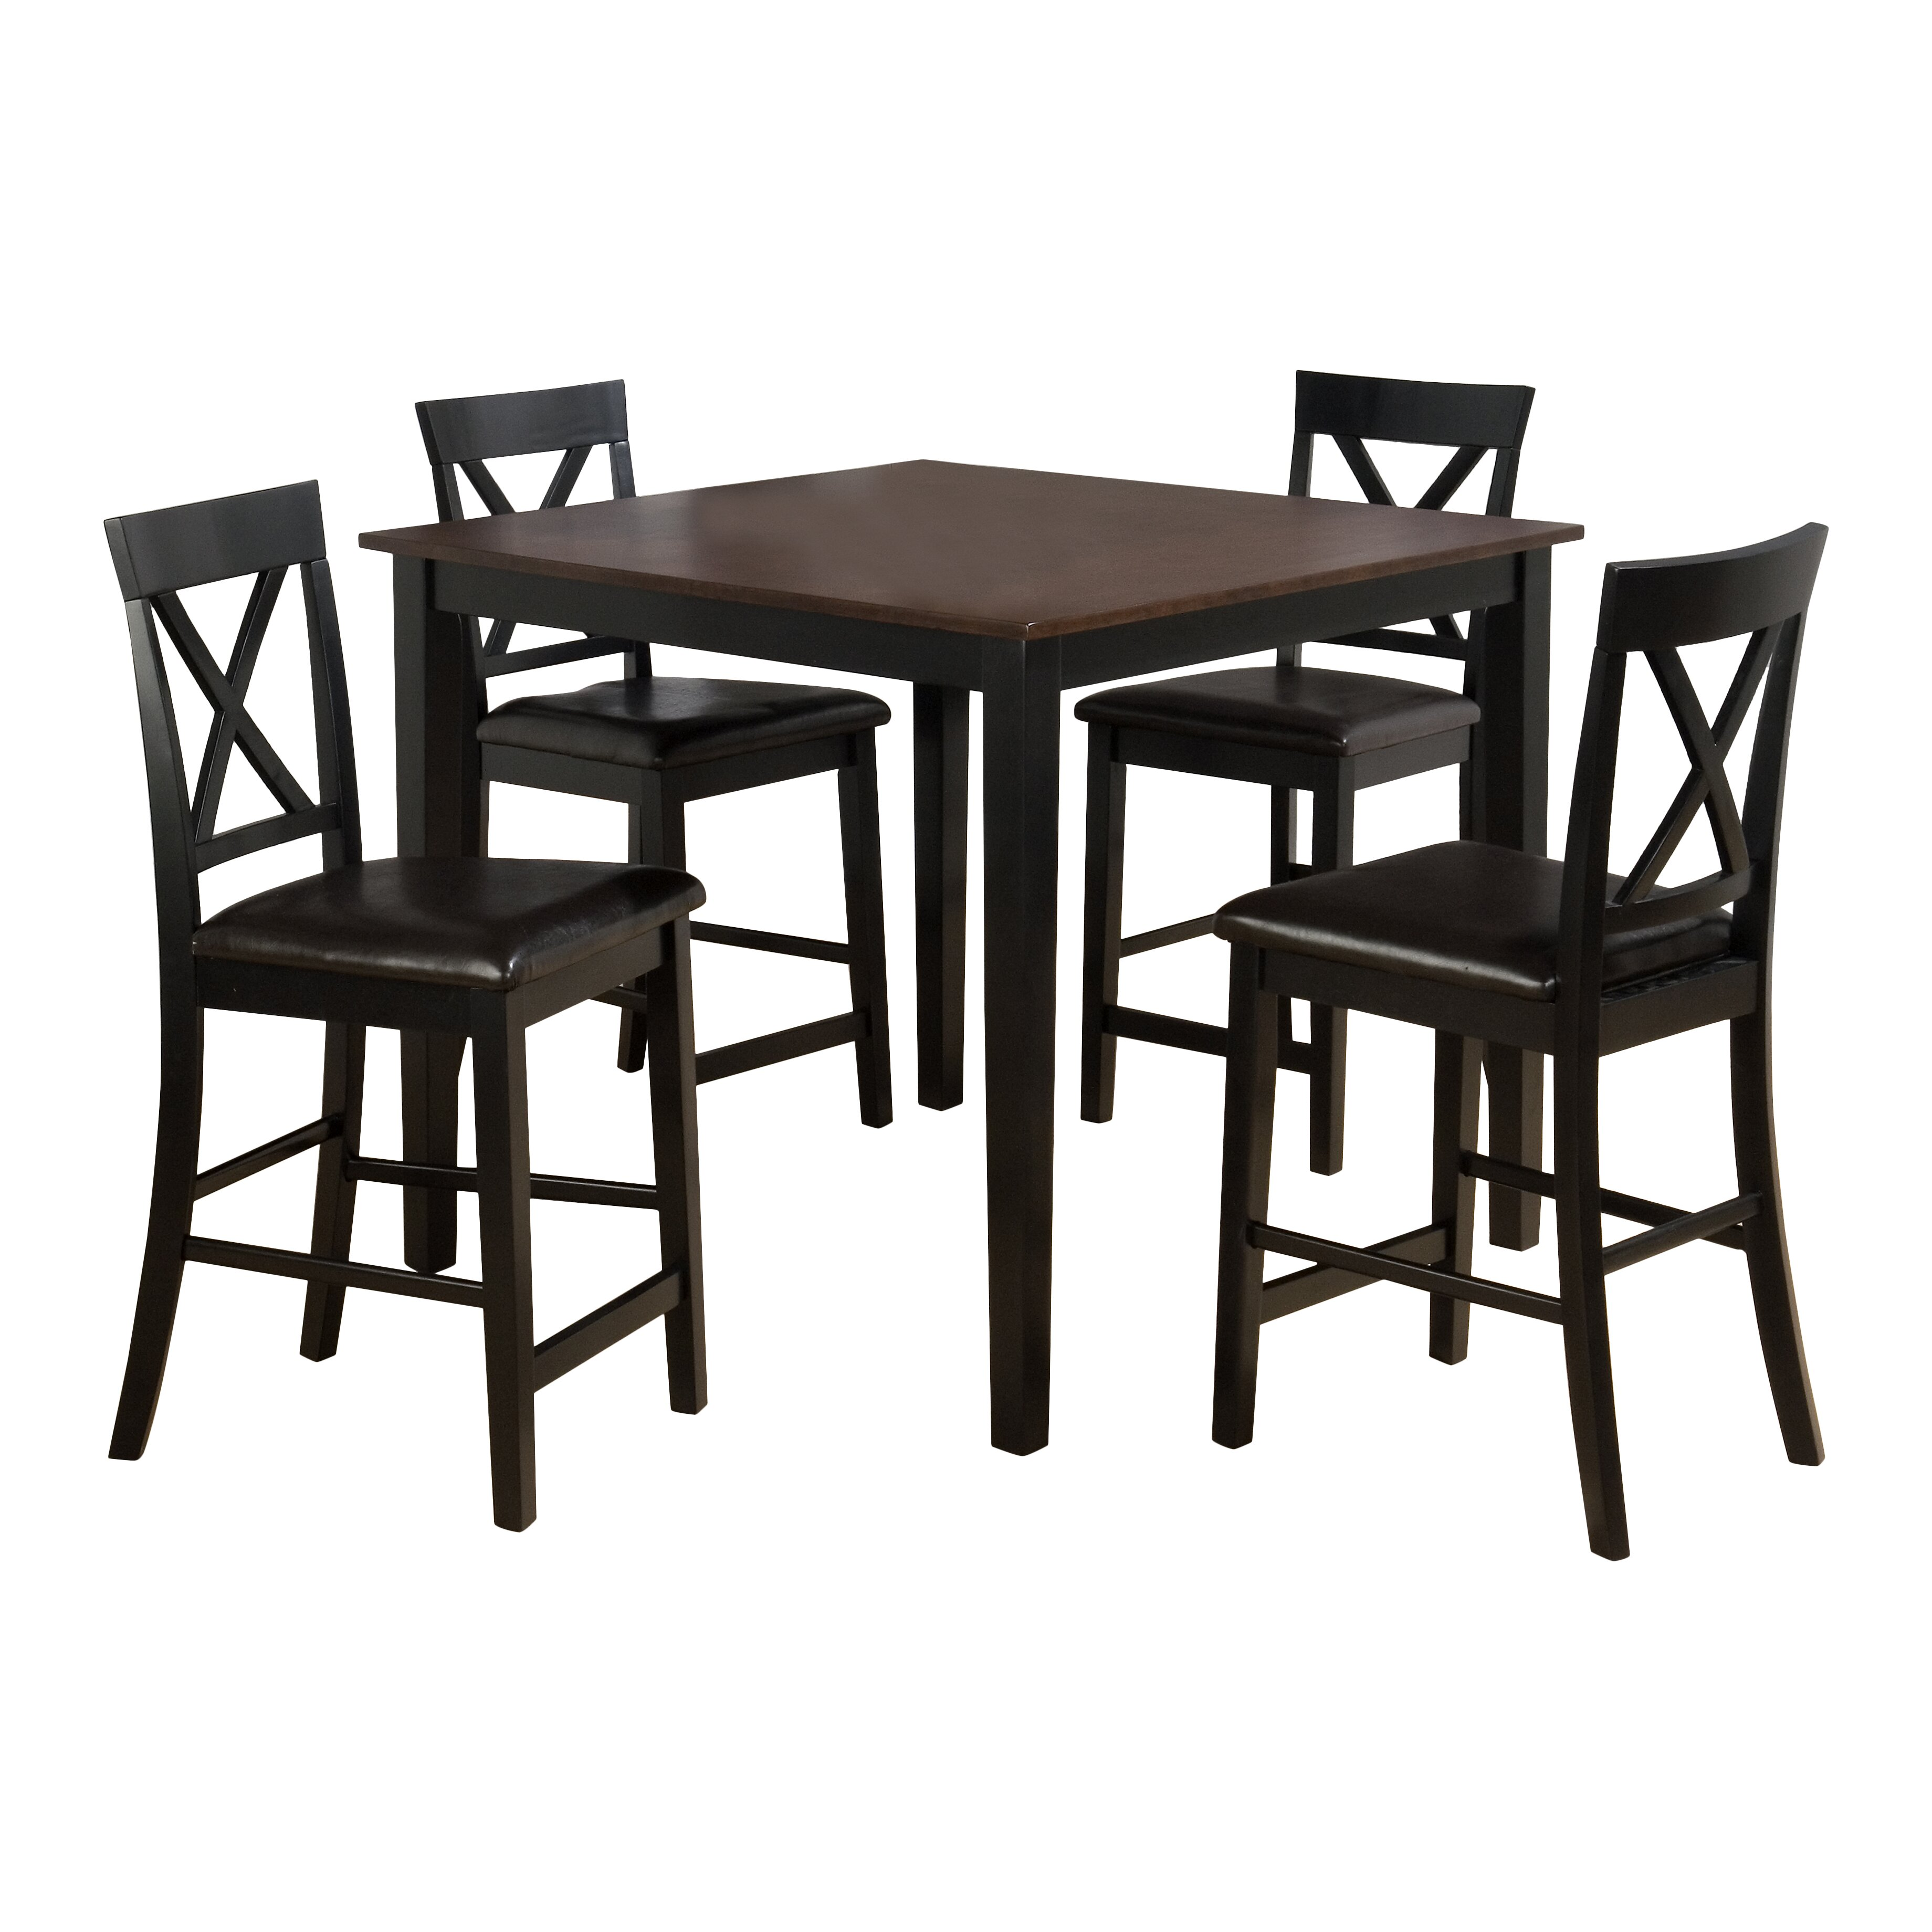 Counter Height Dining Sets 5 Piece : Jofran Burly 5 Piece Counter Height Dining Table Set & Reviews ...